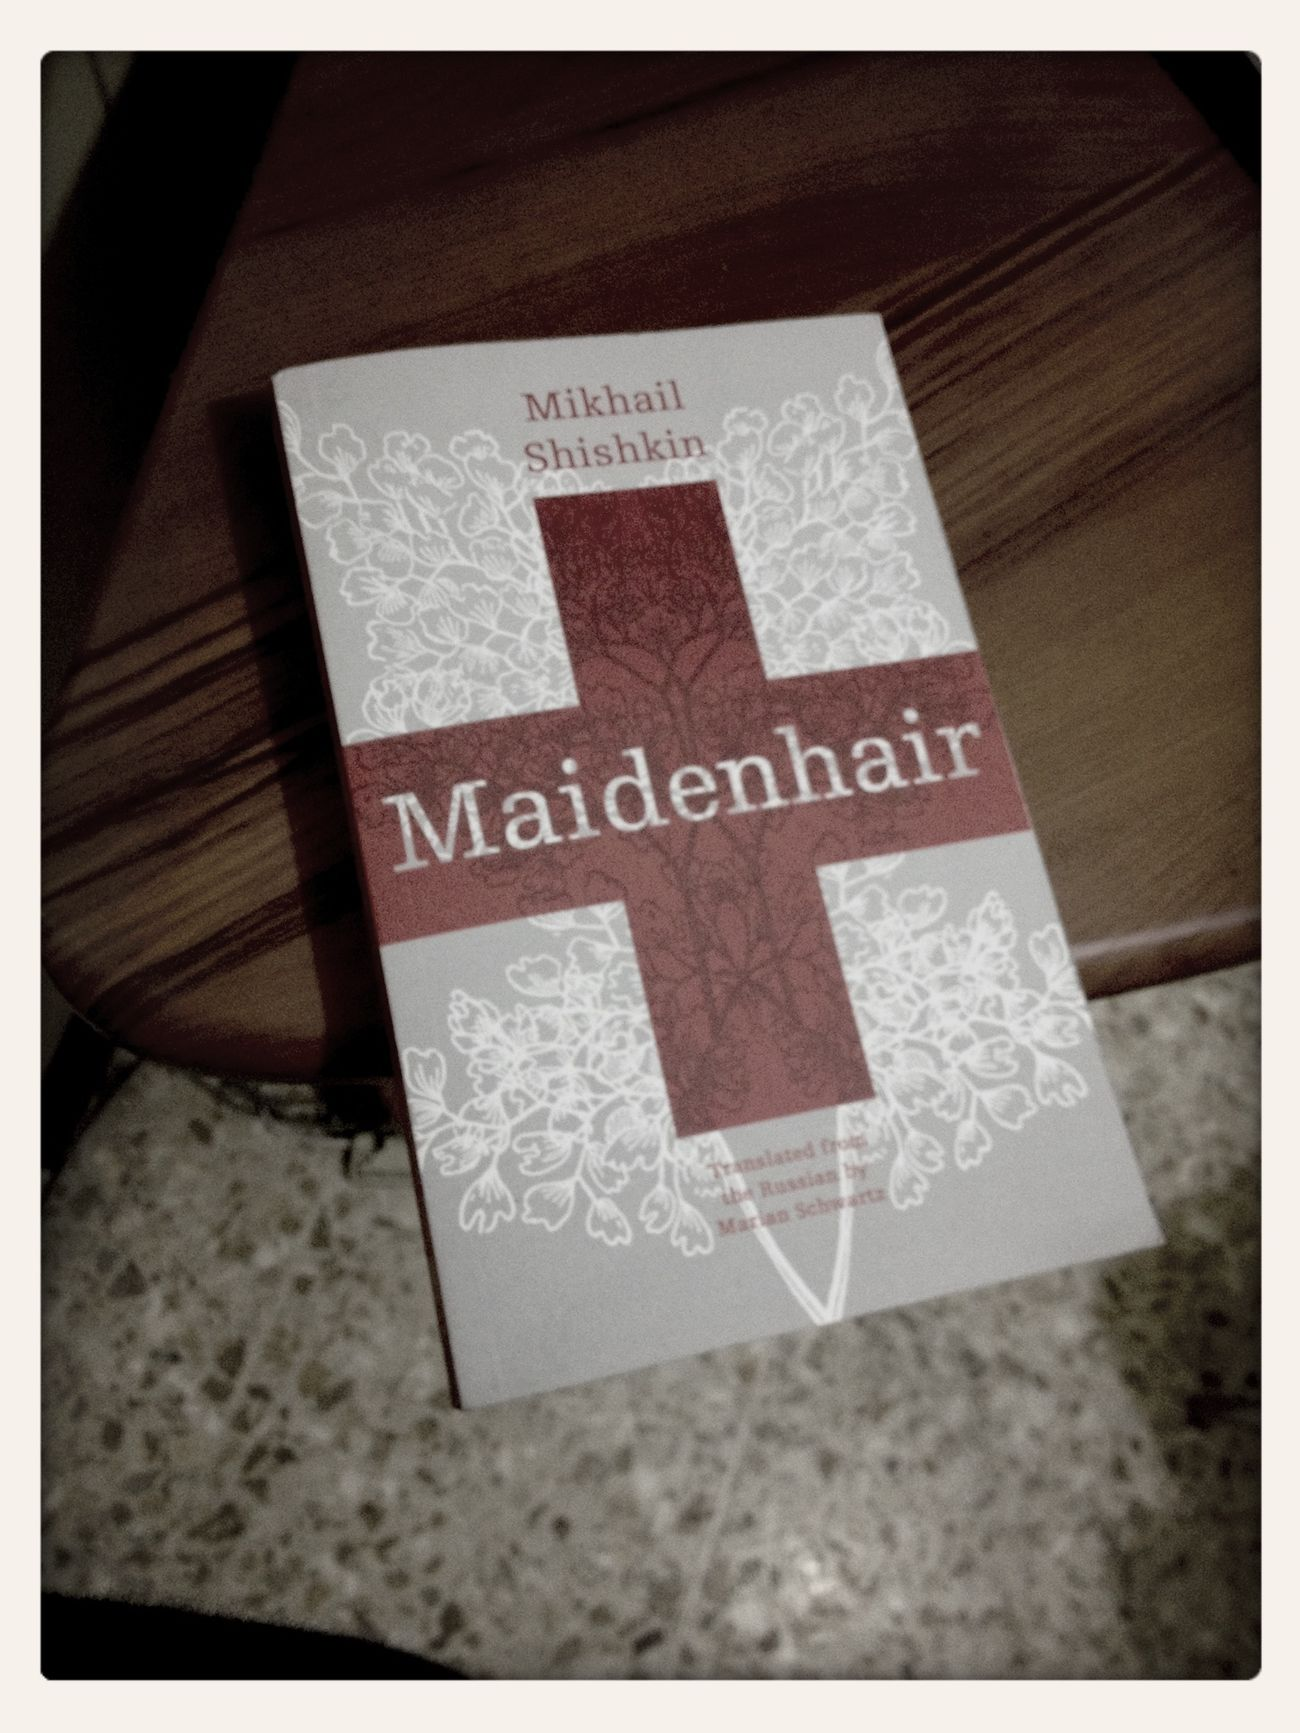 Maidenhair Books